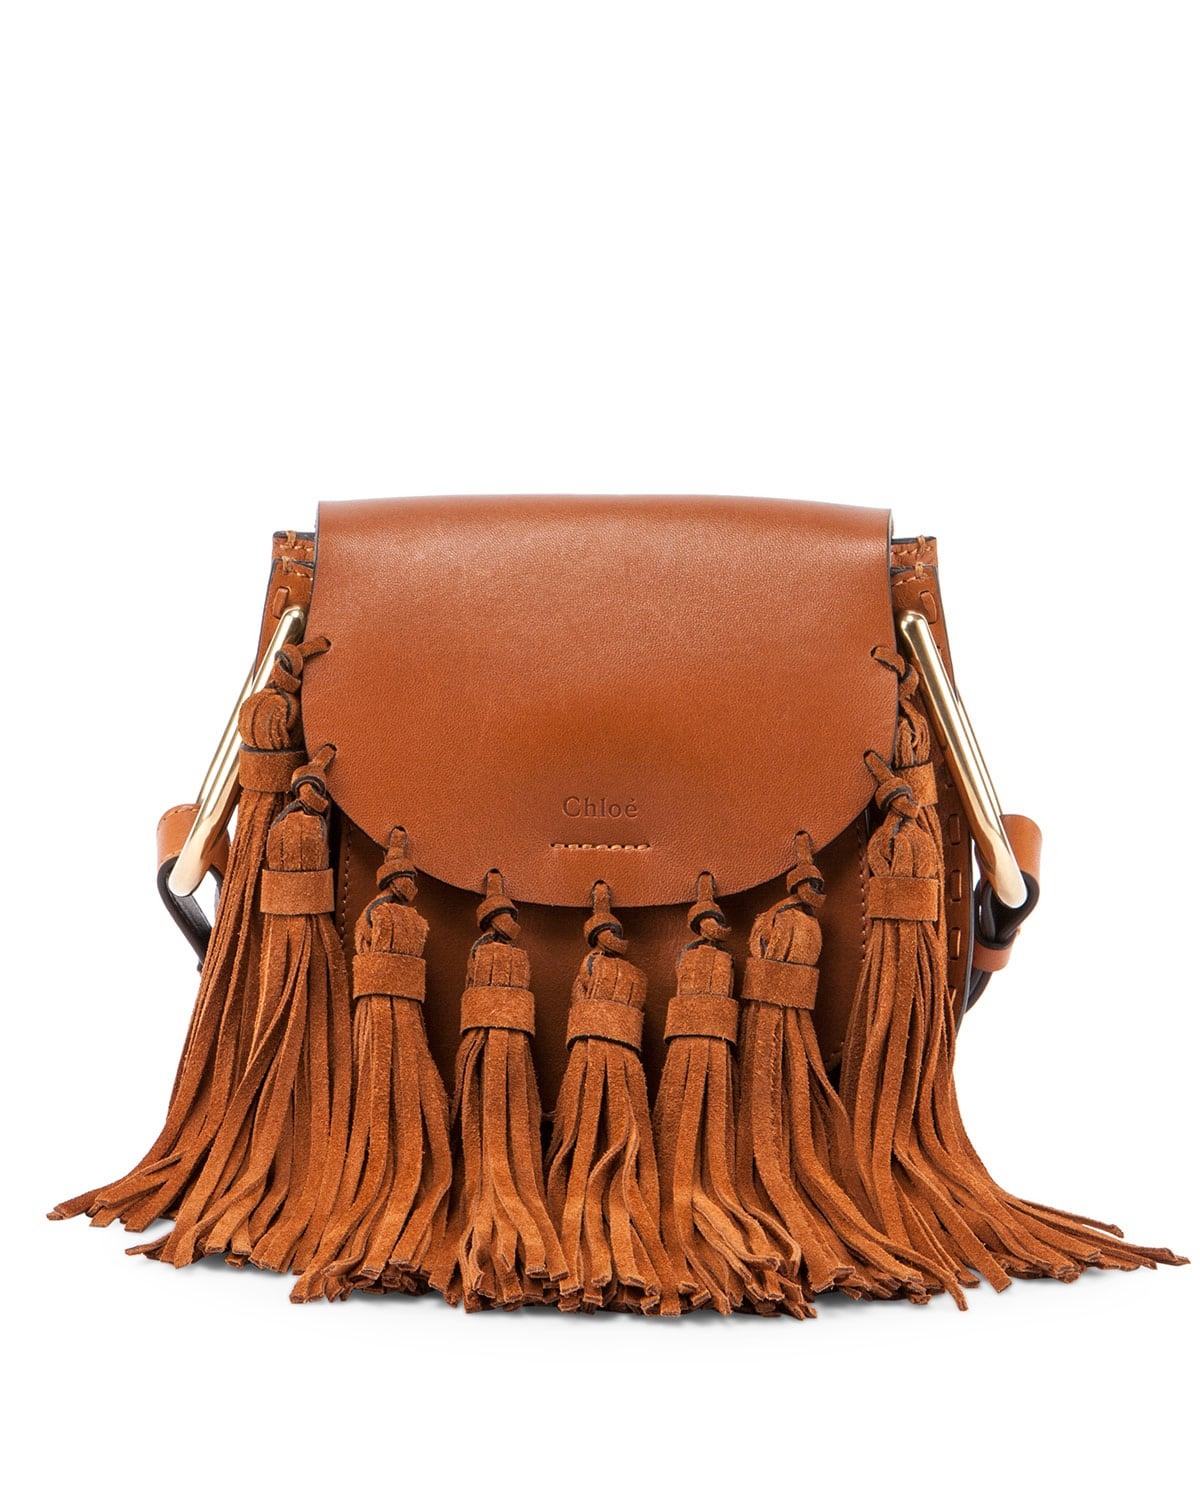 chole hand bags - Chloe Fall / Winter 2015 Bag Collection Featuring Fringe Bags ...